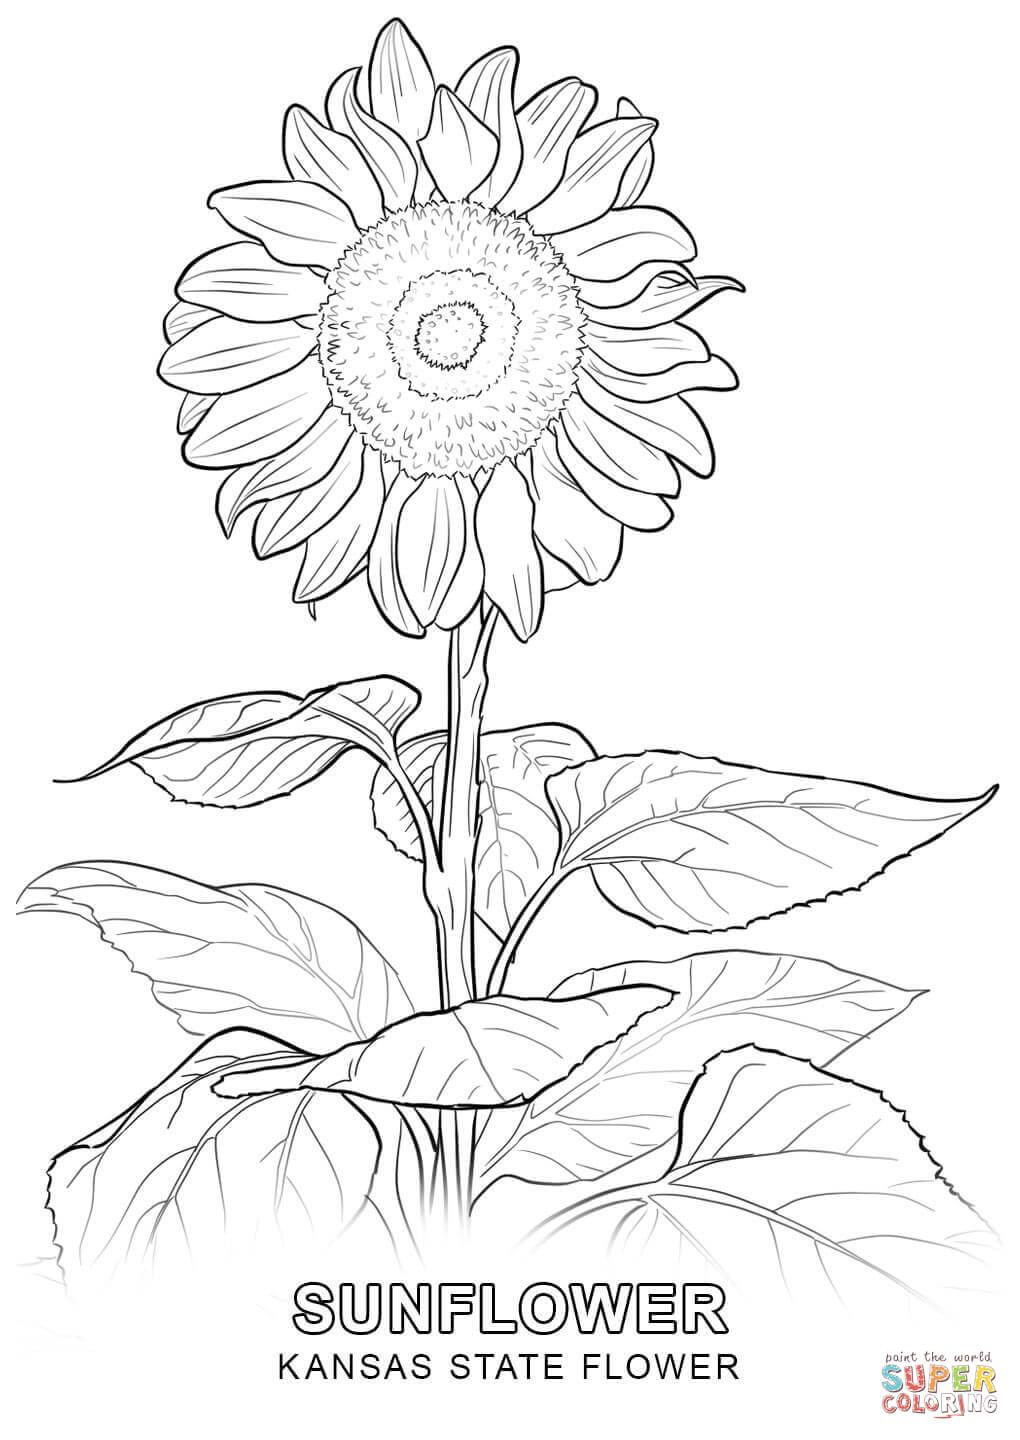 Kansas State Flower Coloring Page Jpg 1020 1440 Sunflower